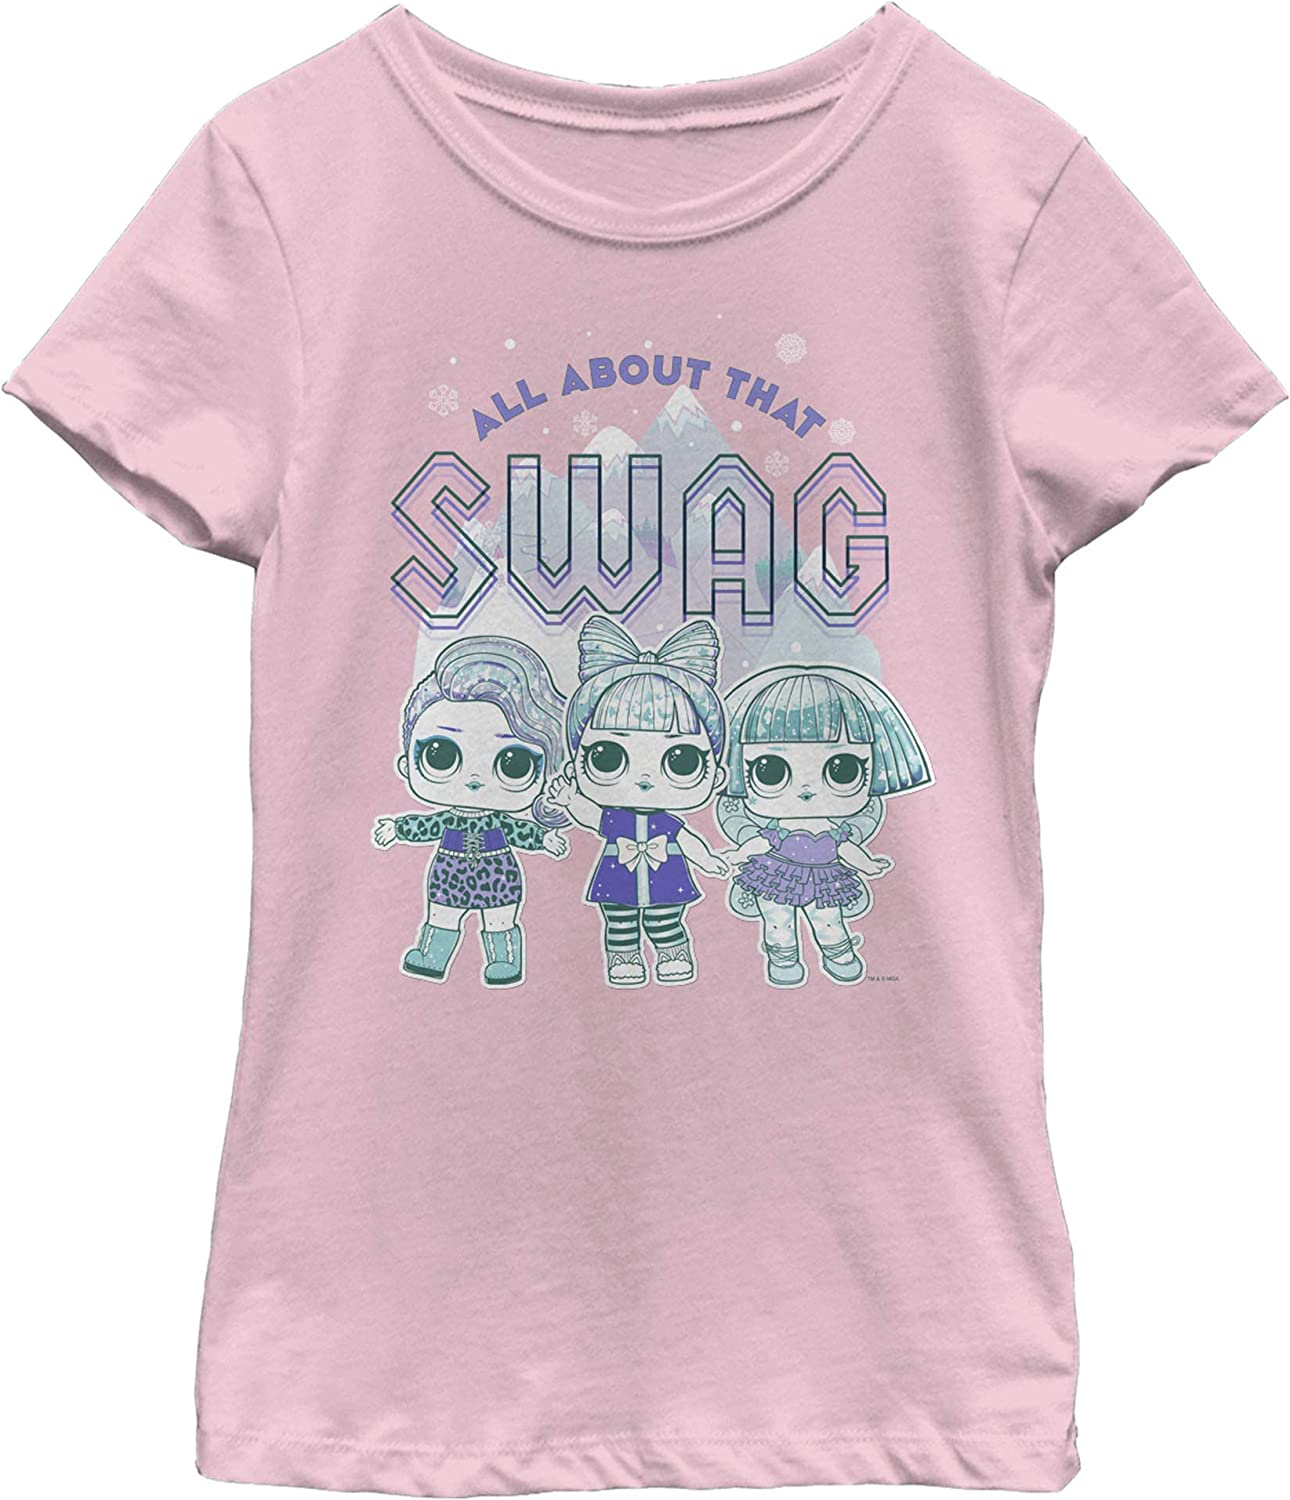 Fifth Sun L.o.l Surprise All About Swag Girl's Solid Crew Tee